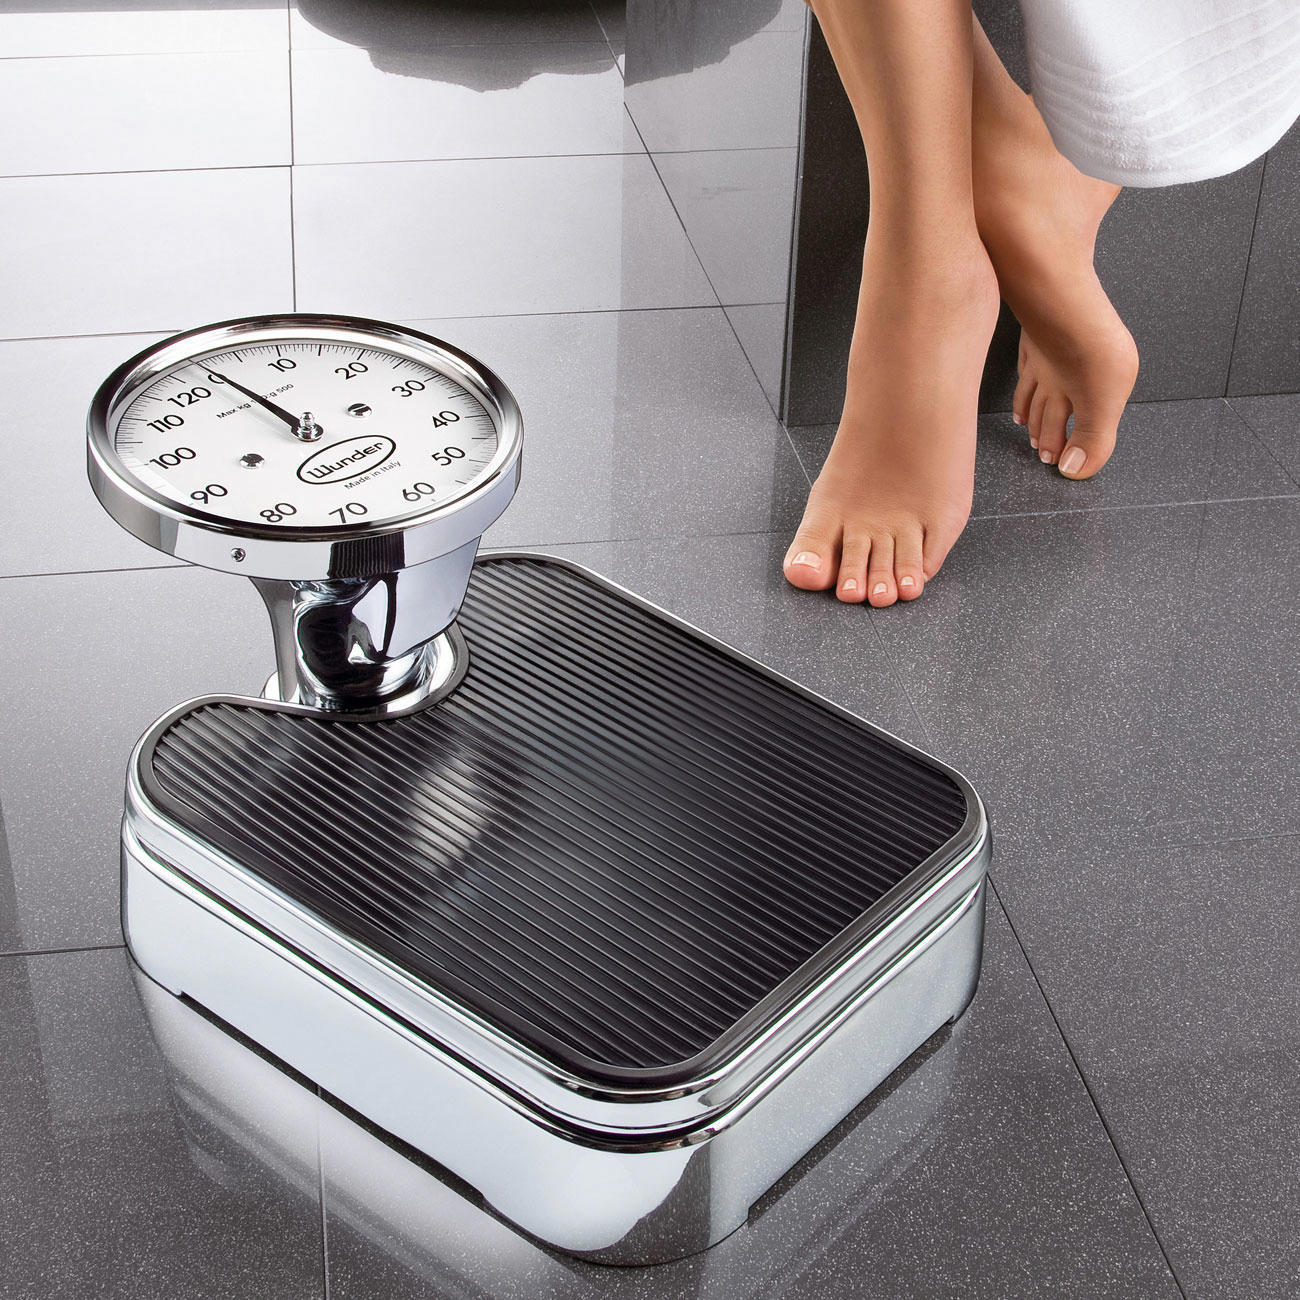 Retro bathroom scales - Quality That Lasts Generations The Classic Wunder Scales From Italy